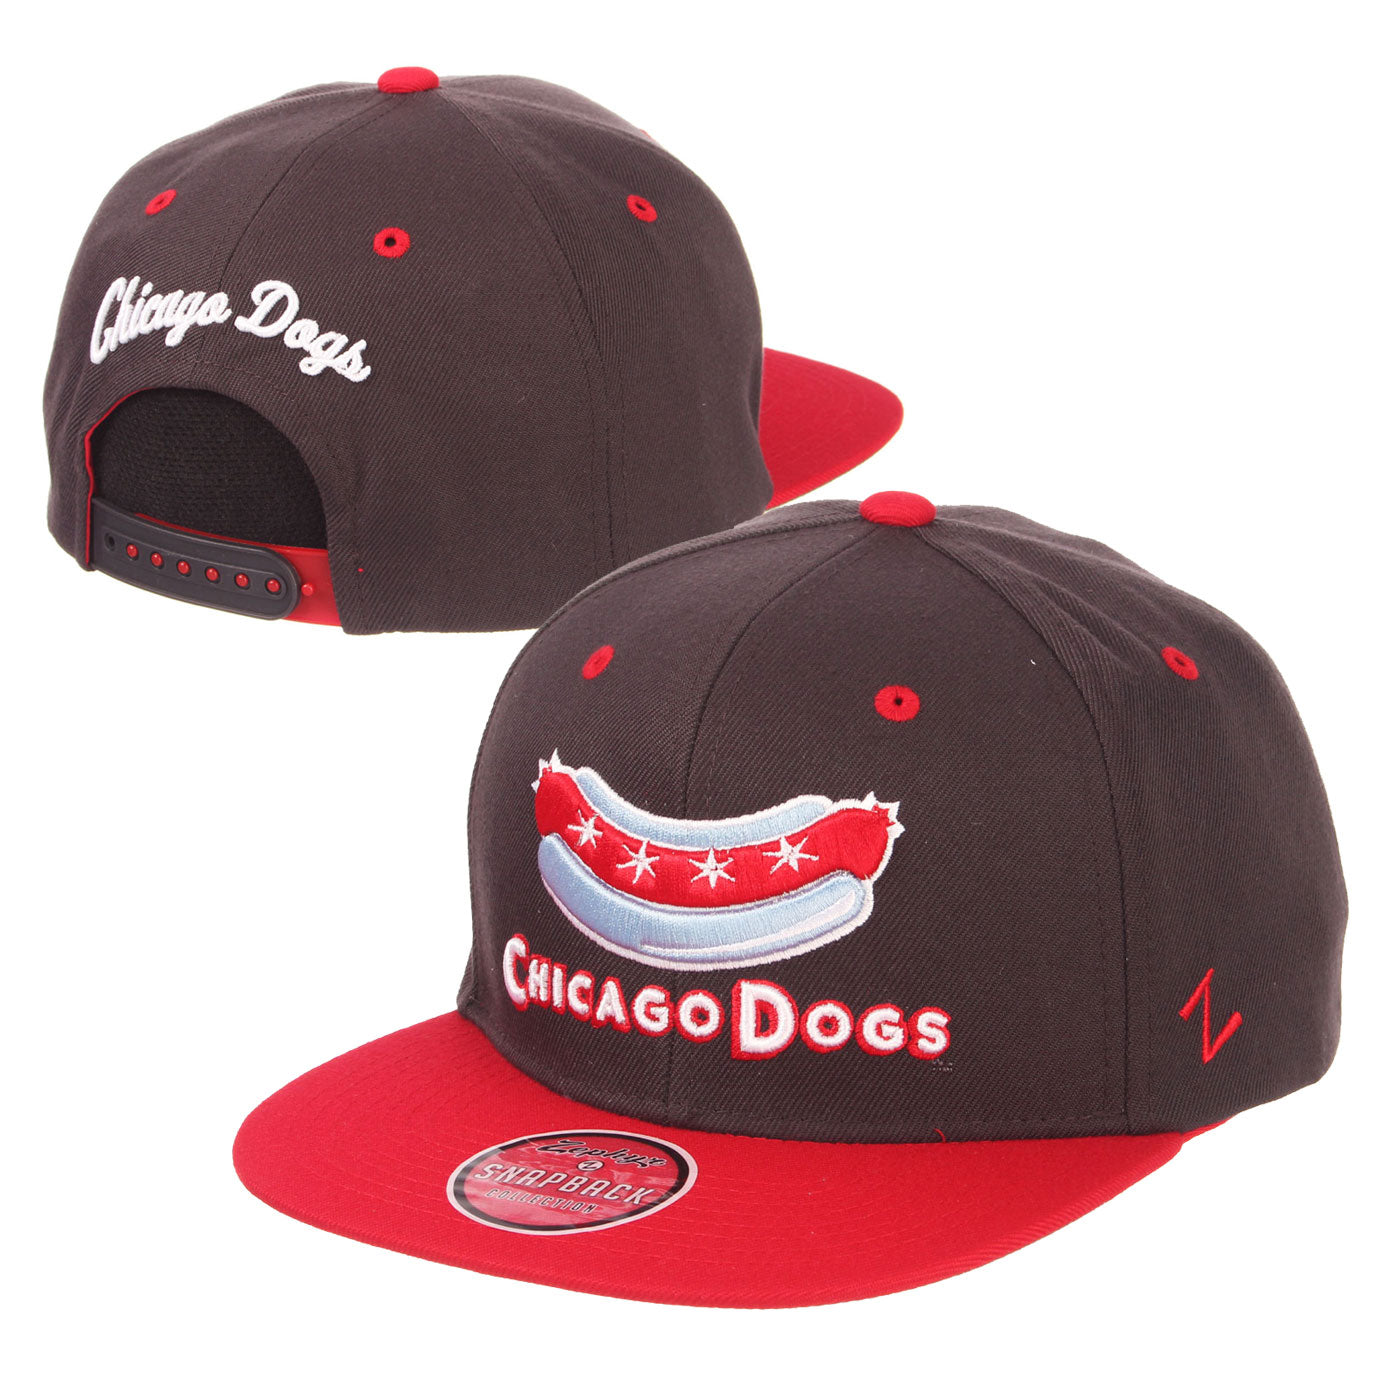 Chicago Dogs Zephyr Secondary Logo Flat Brim Adjustable Snapback Hat - Charcoal/Red